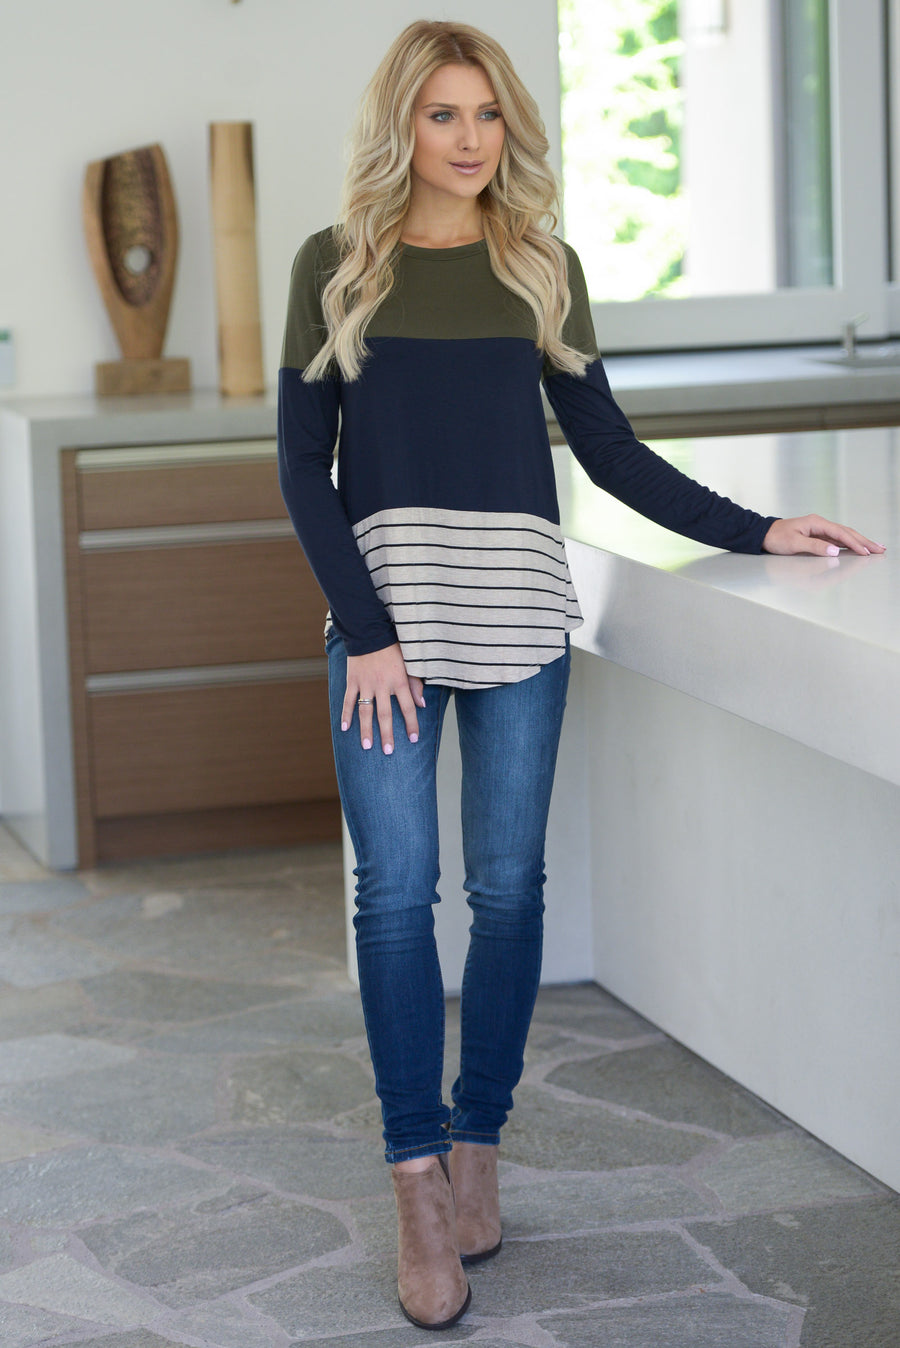 The Perfect Blend Top - Olive/Navy soft long sleeve, stripe, color-block top with crochet trim detail center back detail, closet candy boutique 1